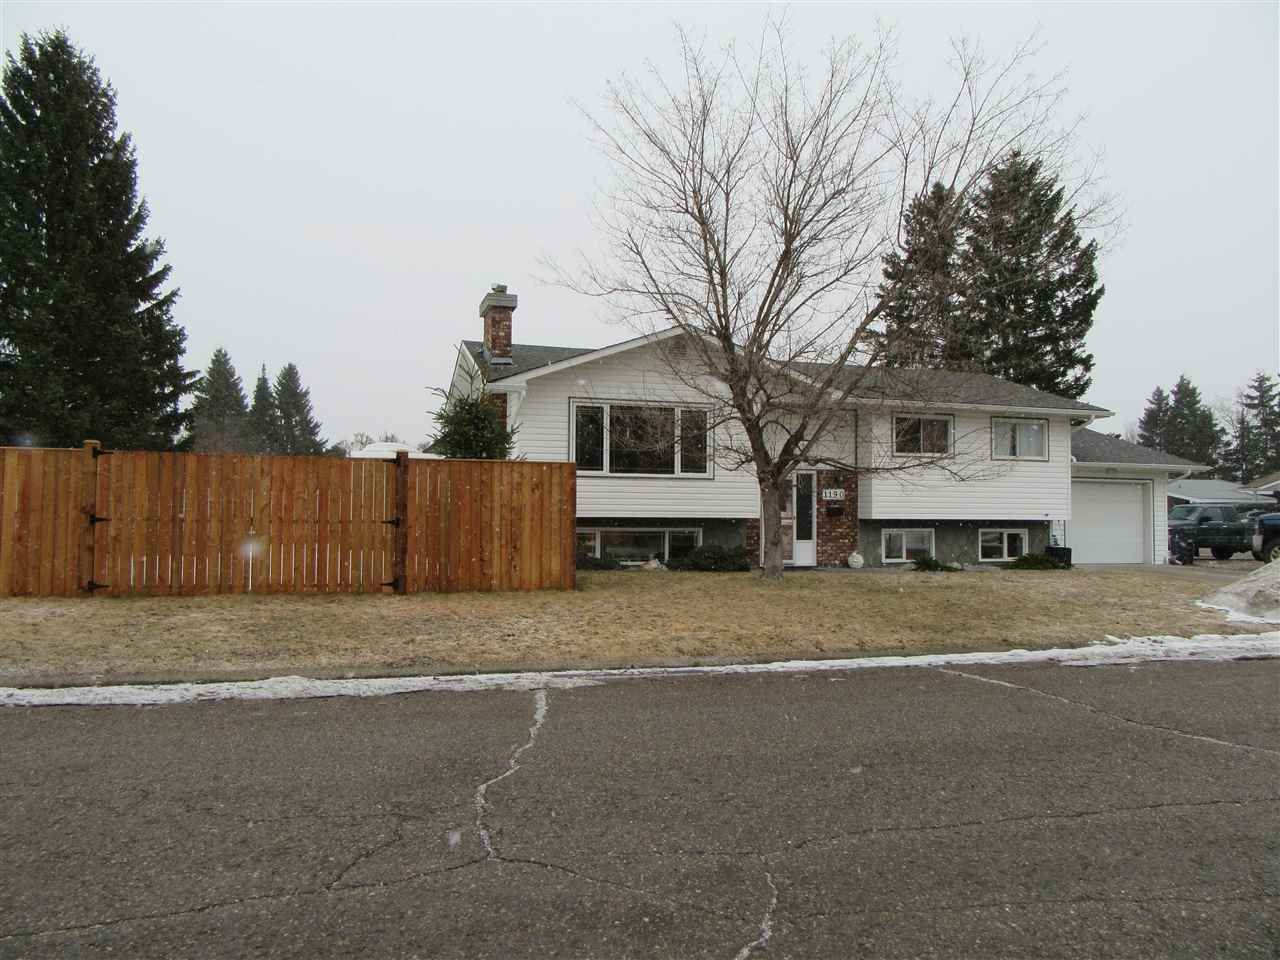 Main Photo: 1190 BOWRON Crescent in Prince George: Foothills House for sale (PG City West (Zone 71))  : MLS®# R2555451